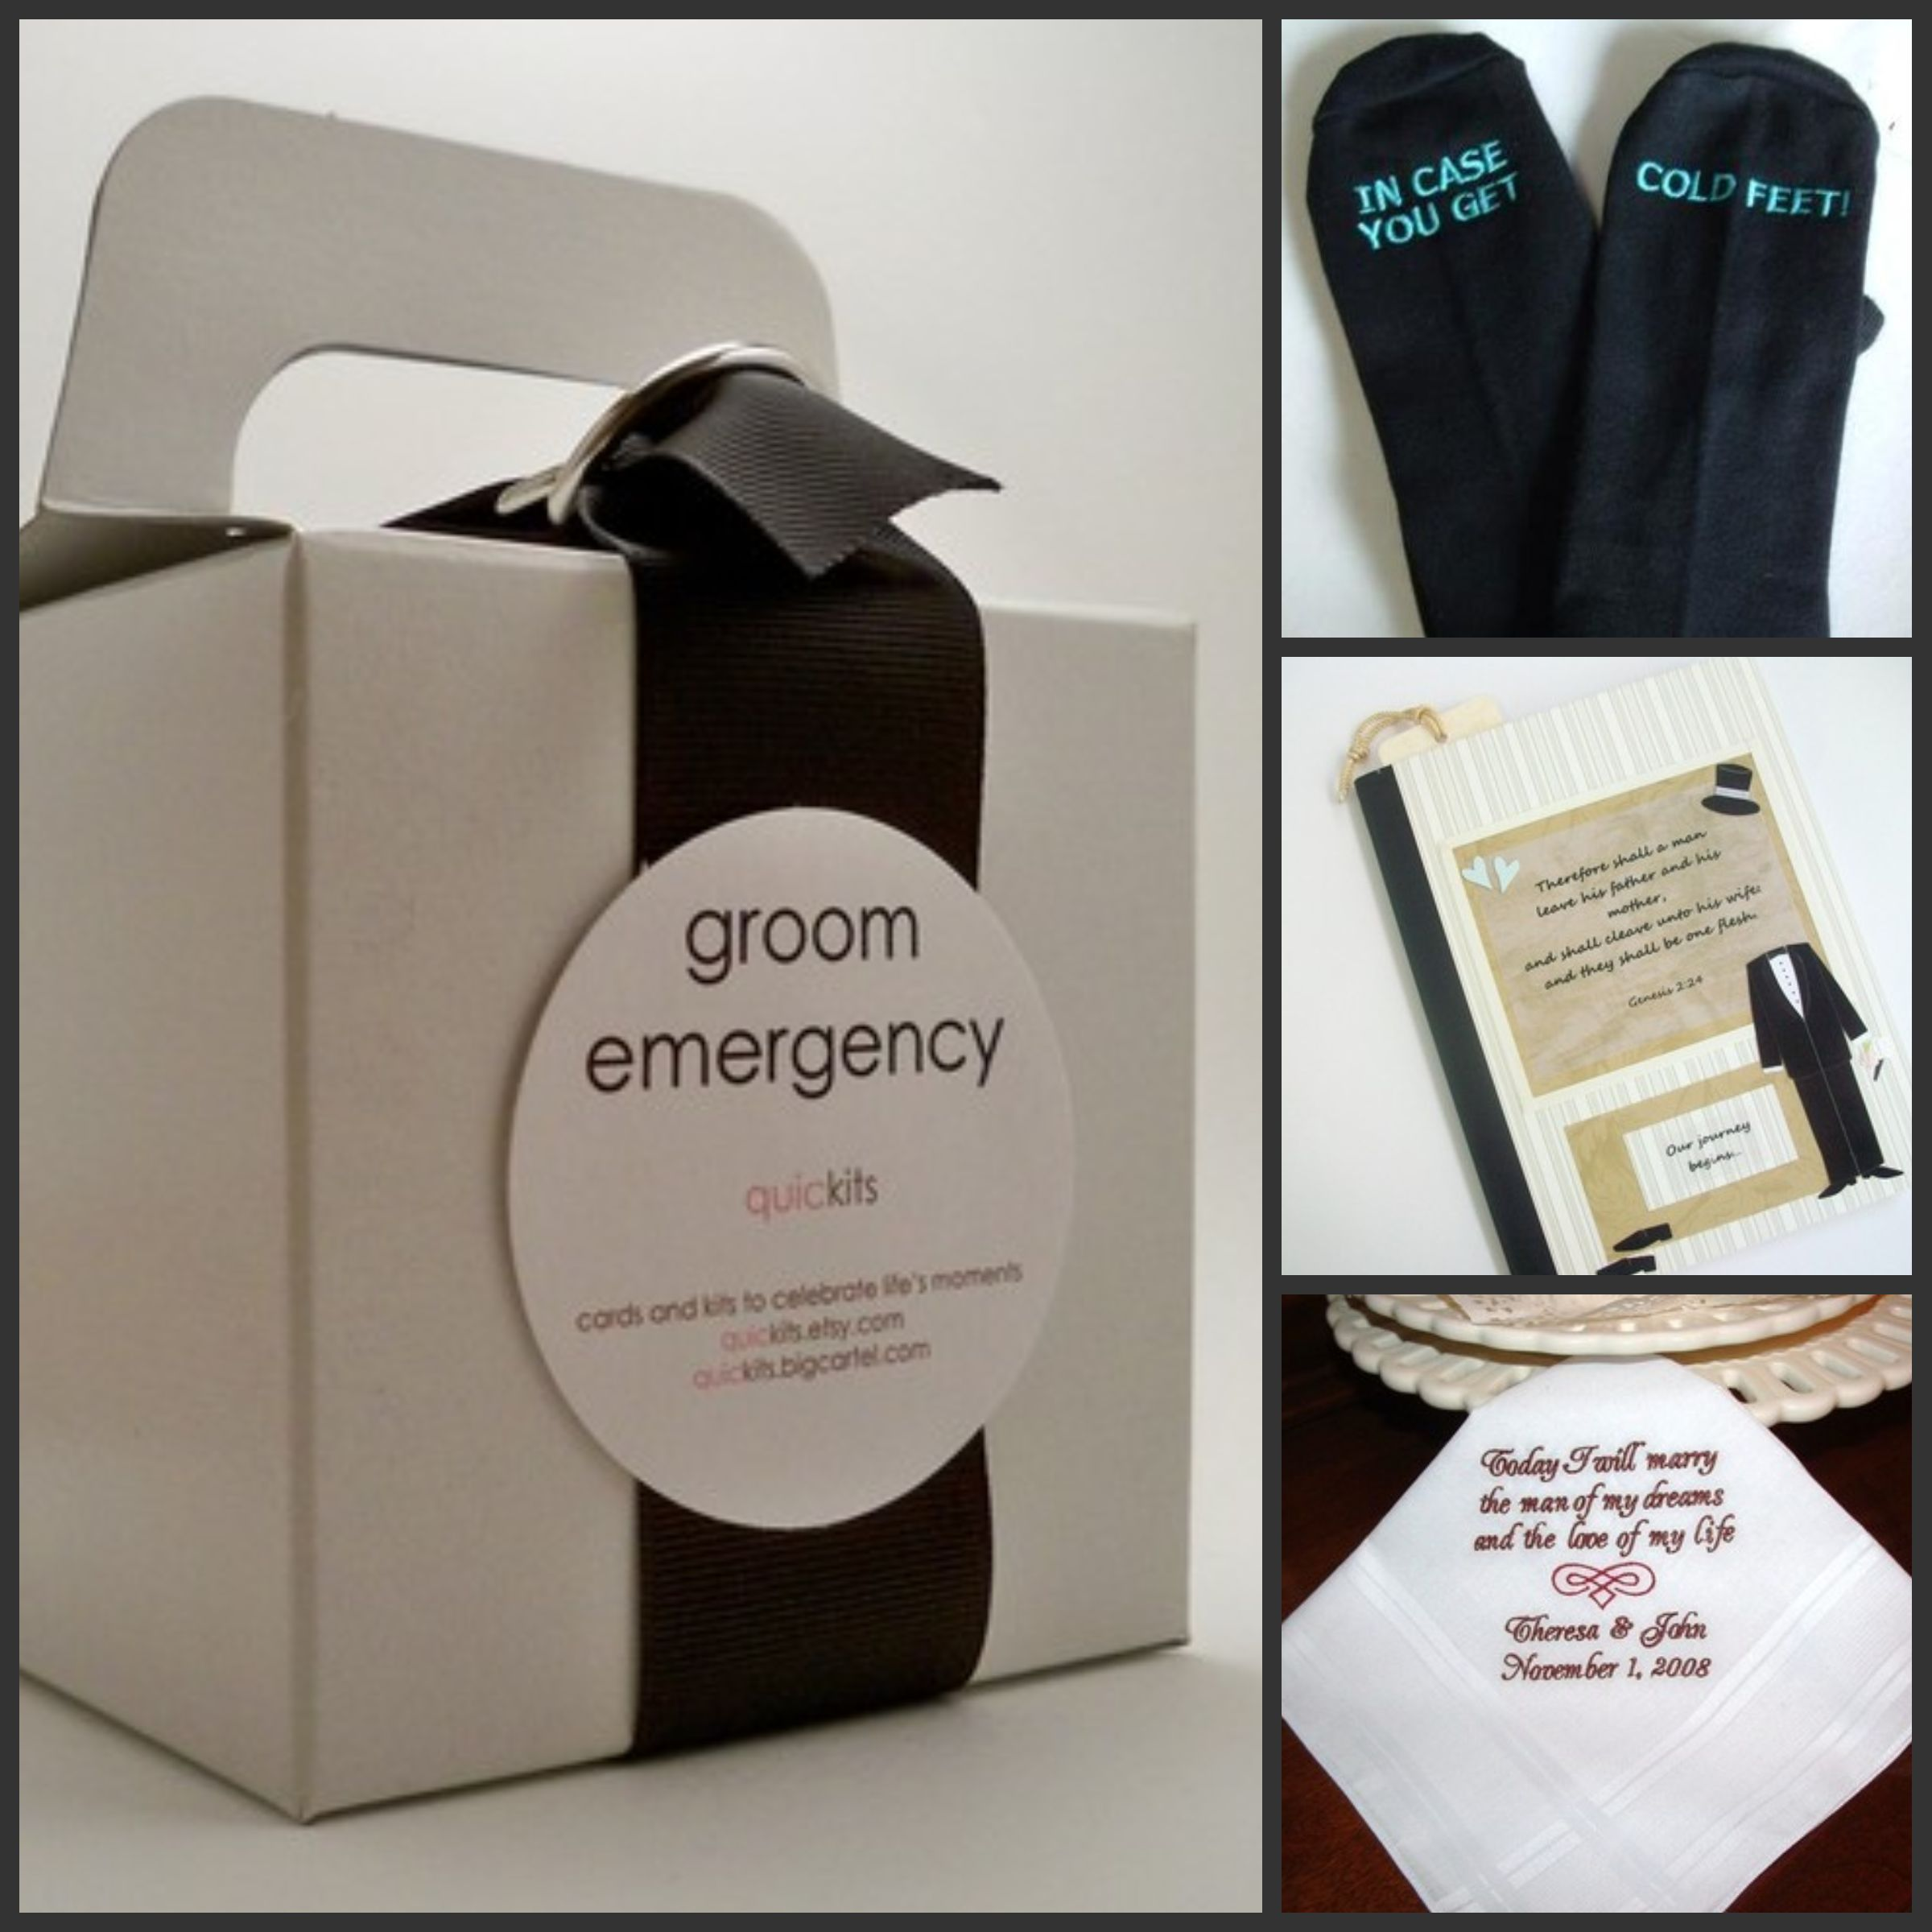 Wedding Gift Ideas For A Groom : personal gifts for your groom clockwise from left groom emergency kit ...